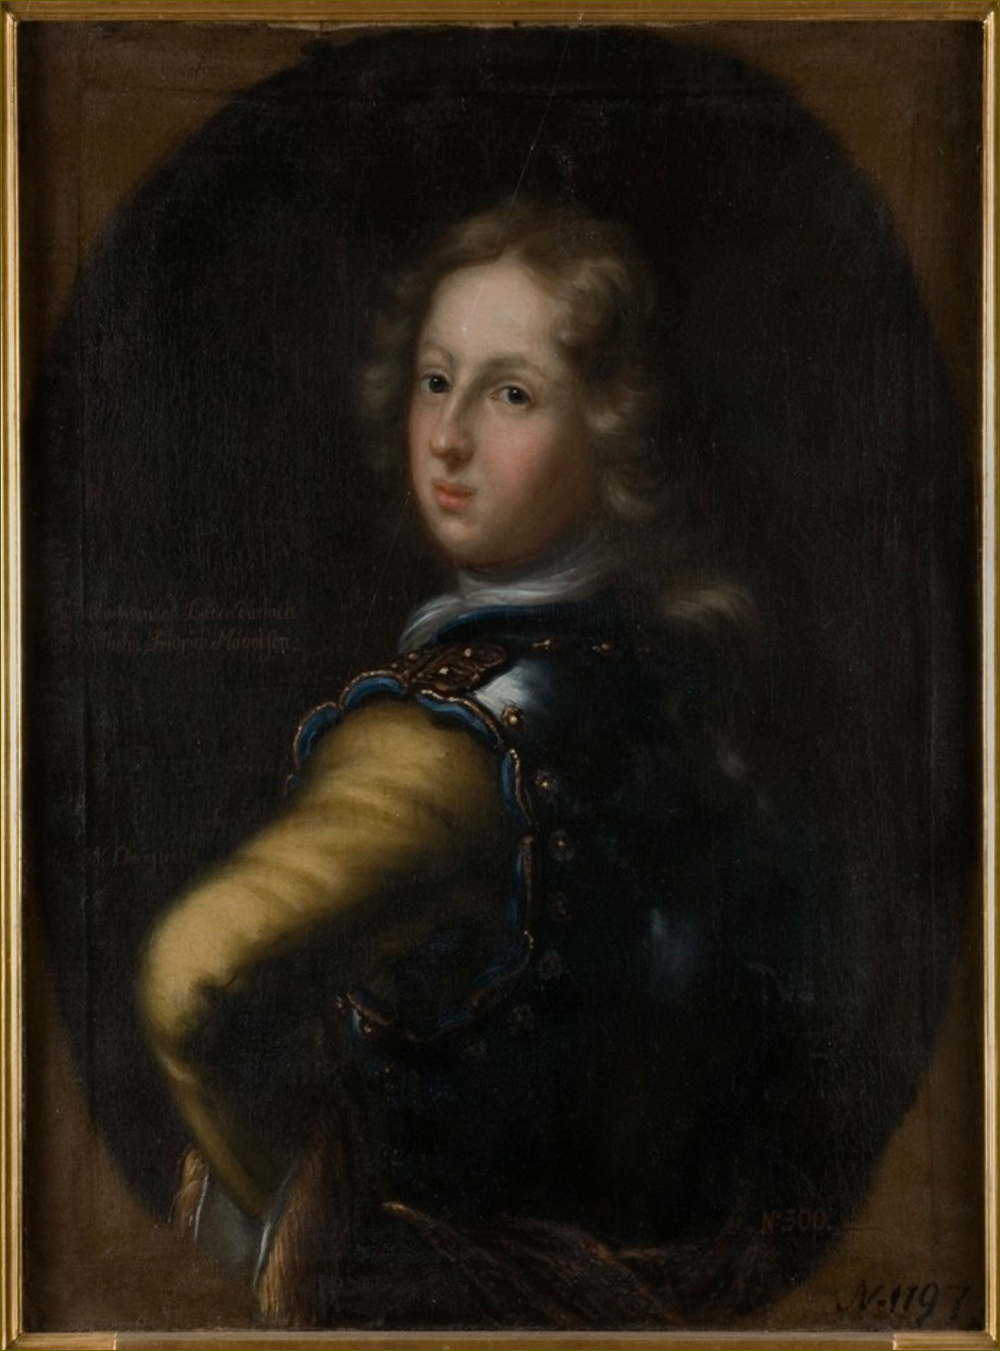 Charles III Guillaume, margrave de Bade-Durlach, jeune homme, par Ehrenstrahl